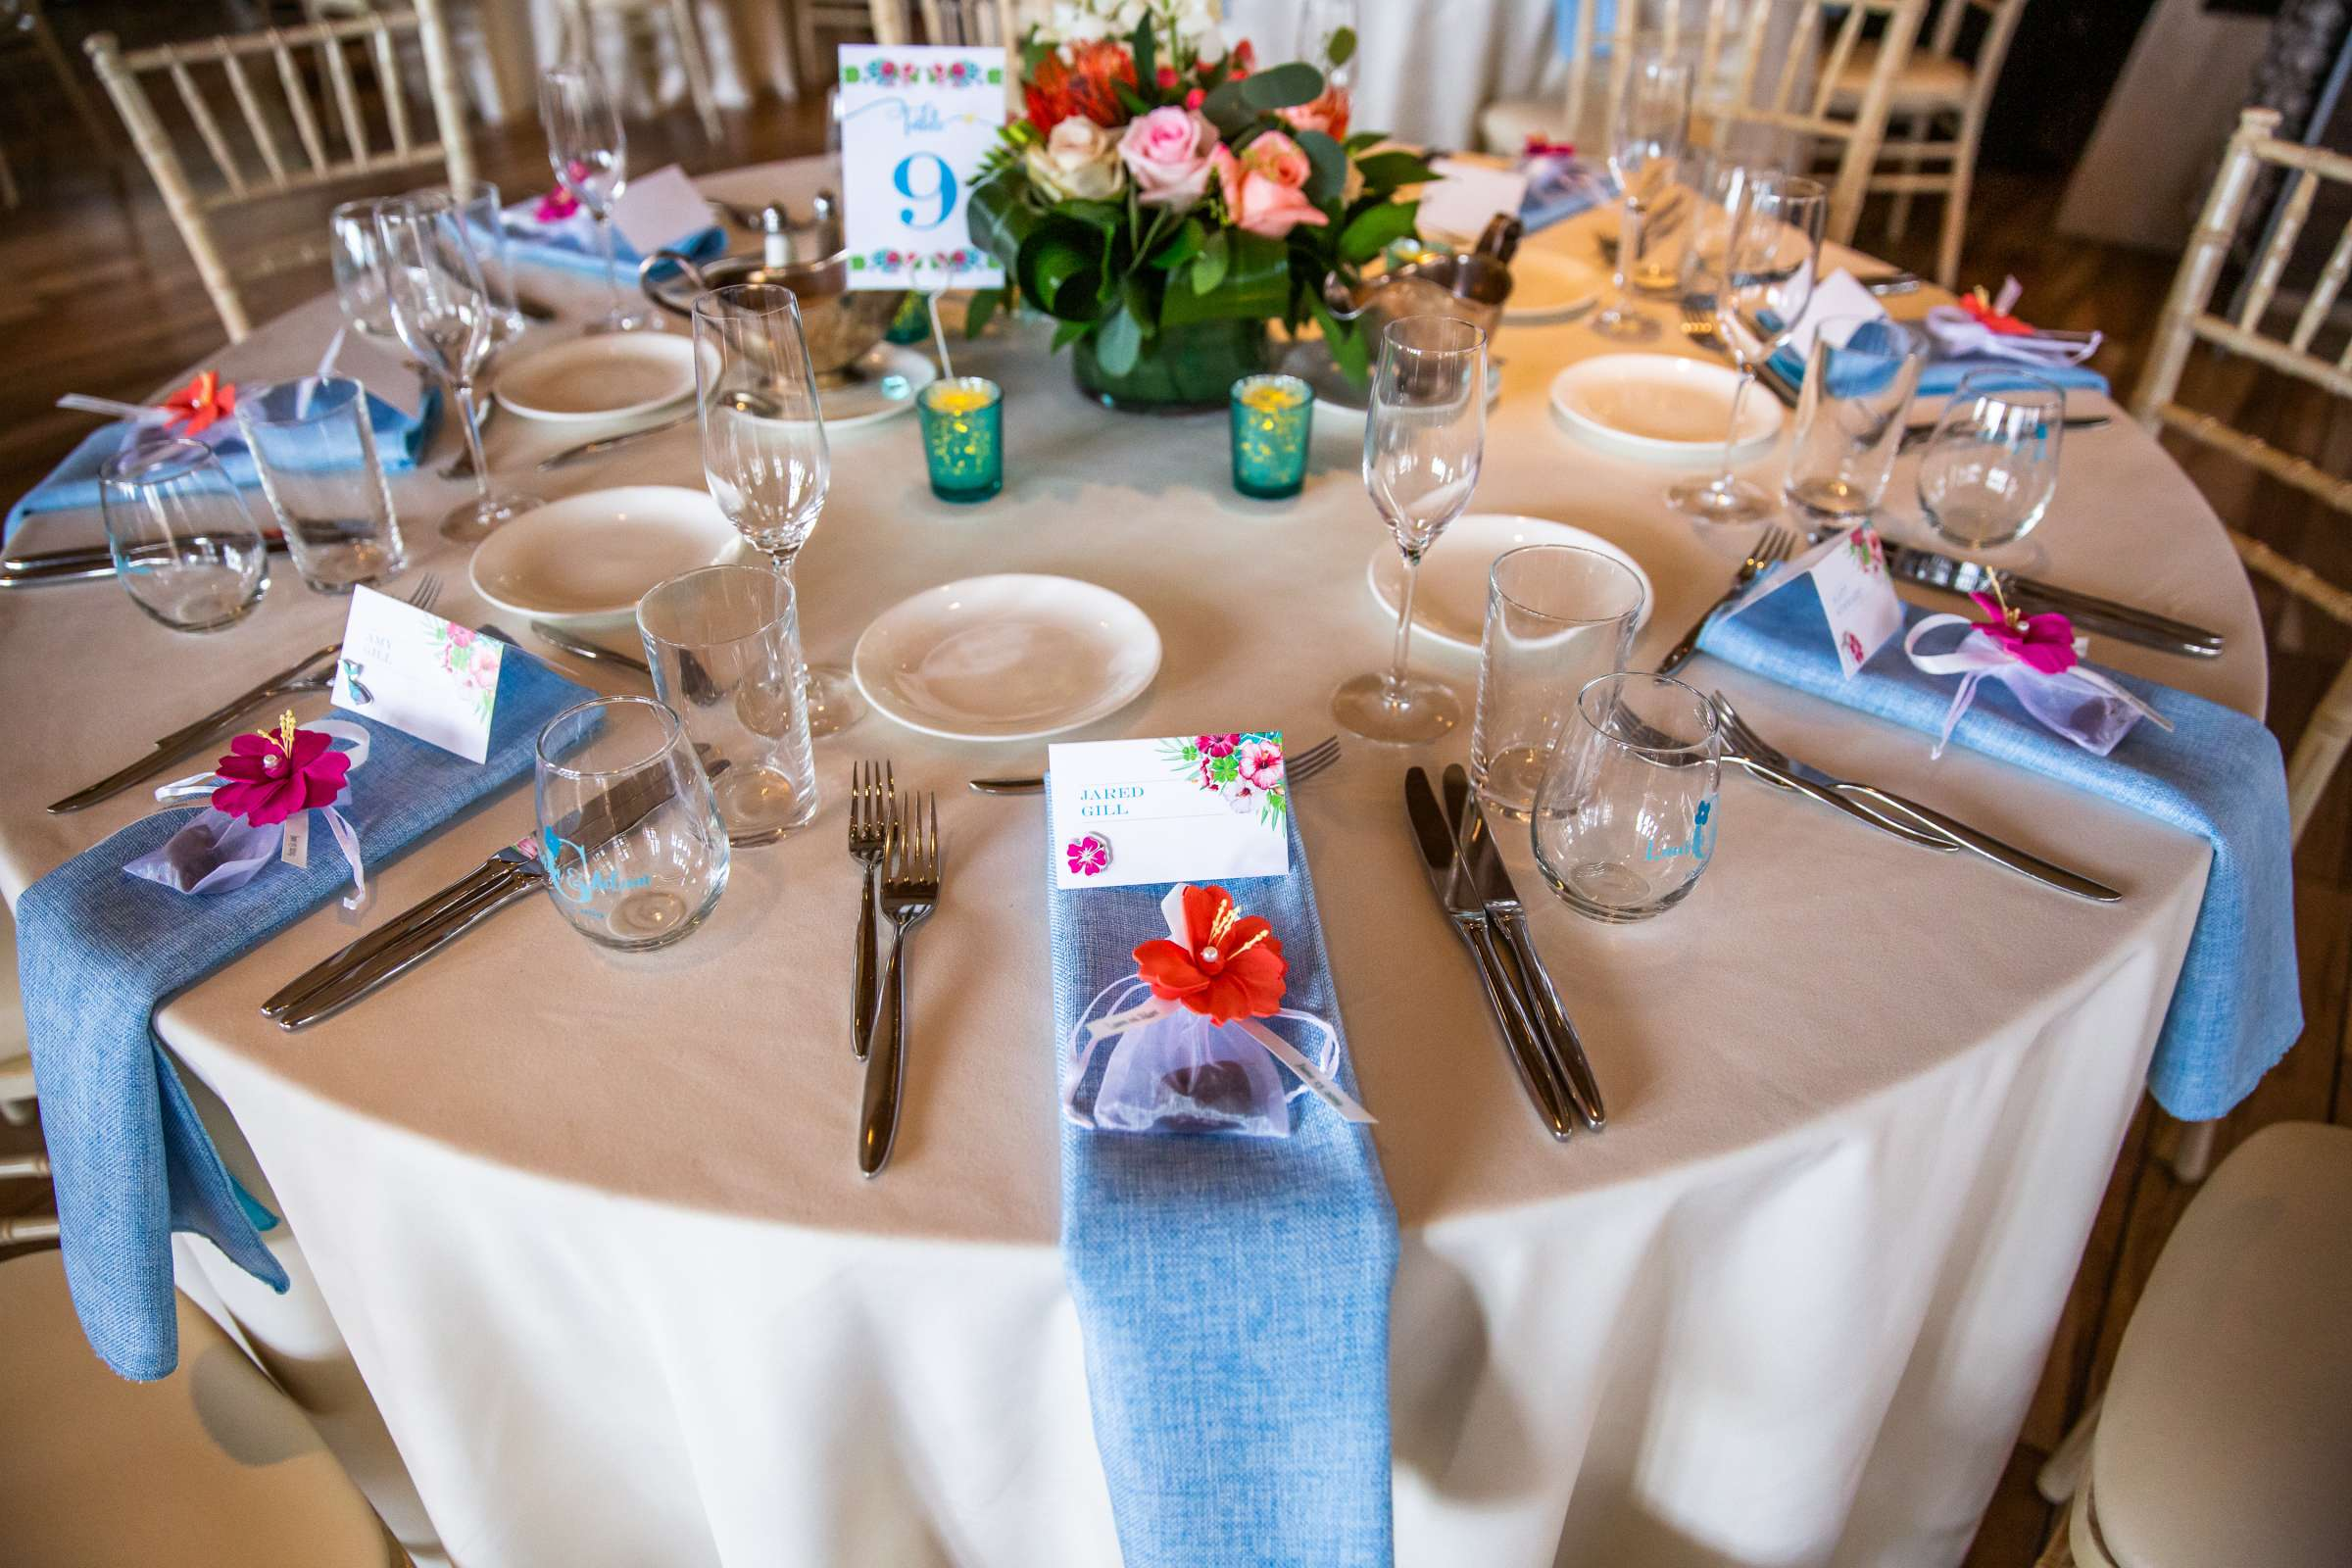 San Diego Mission Bay Resort Wedding coordinated by Cafe Au Love, Lauren and Adam Wedding Photo #159 by True Photography